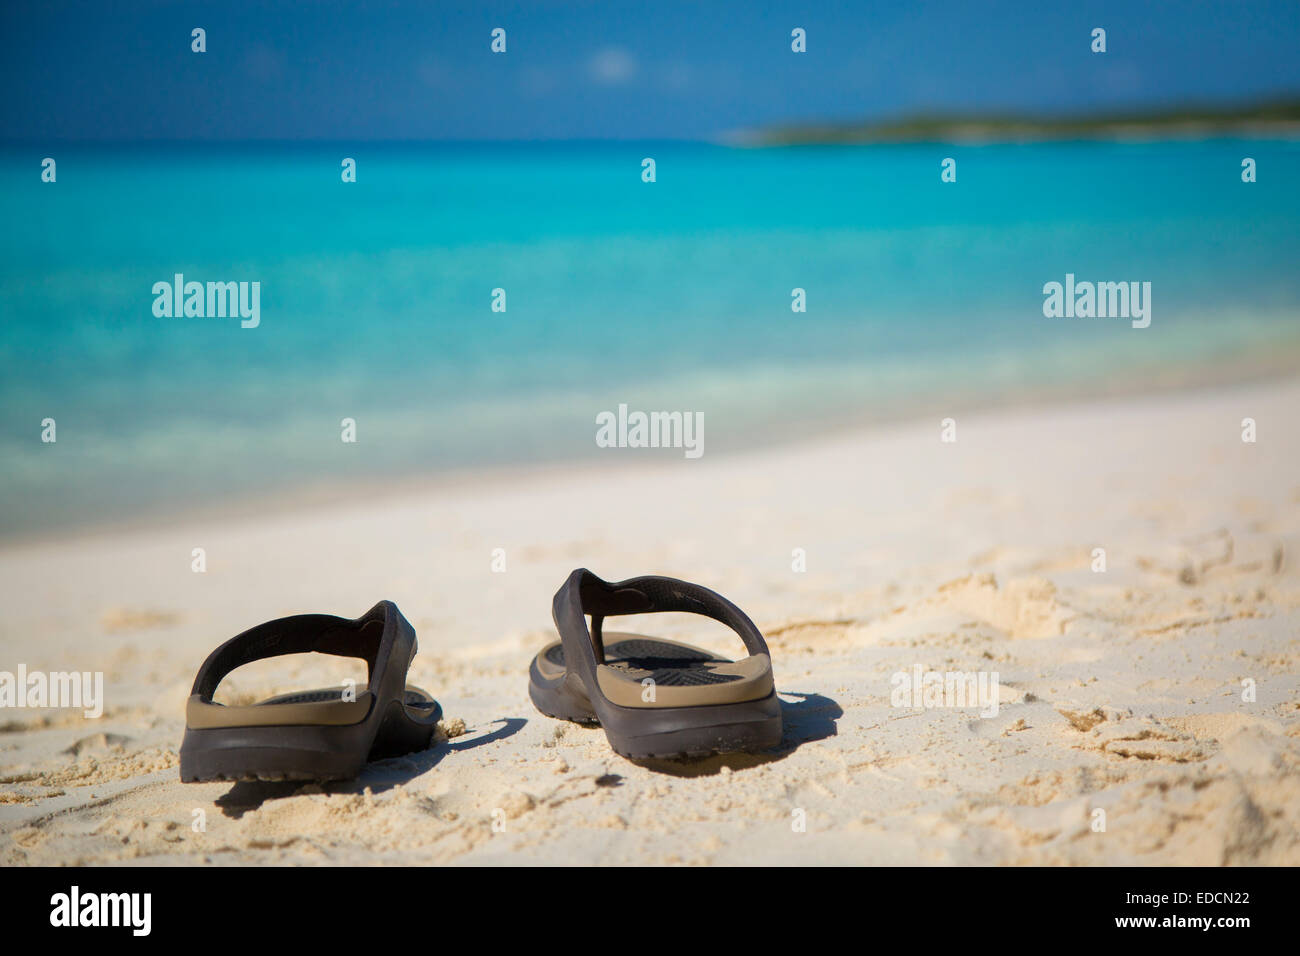 Flip flops on a sandy beach with turqoise water beyond, Halfmoon Cay, Bahamas - Stock Image